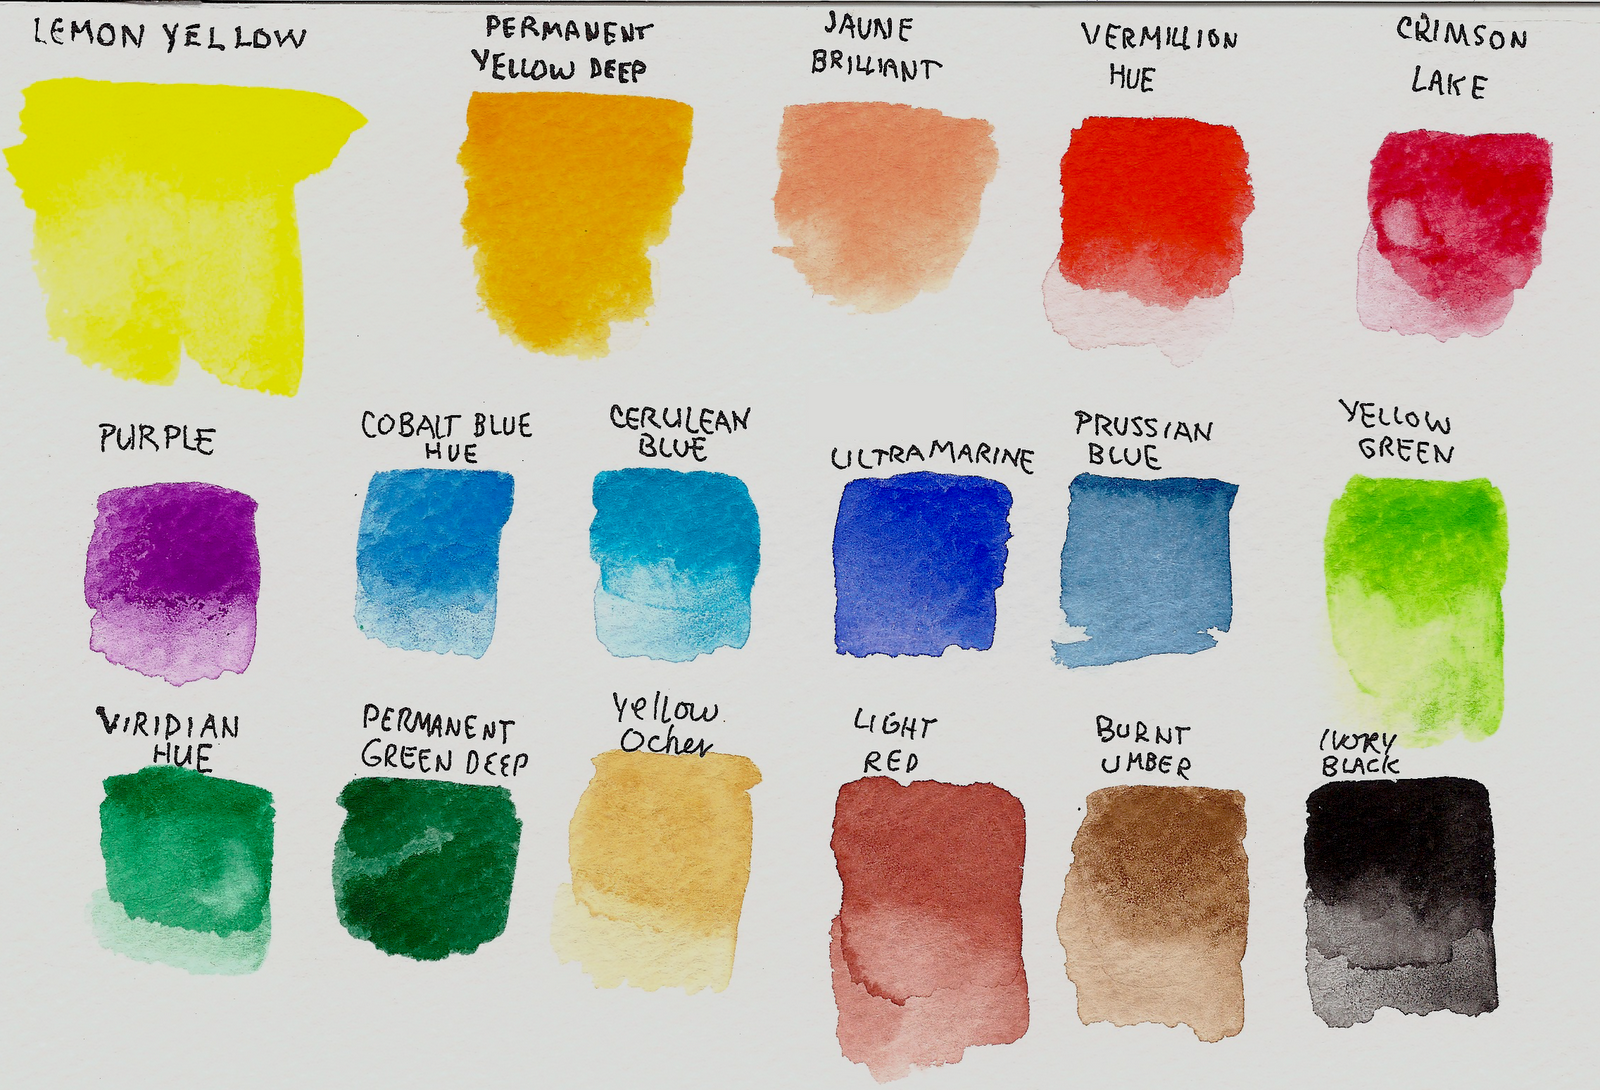 So I Made Up A Color Chart And Then Played Around With Some Techniques Ive Been Finding At Of The Tutorial Sites Posted This Week